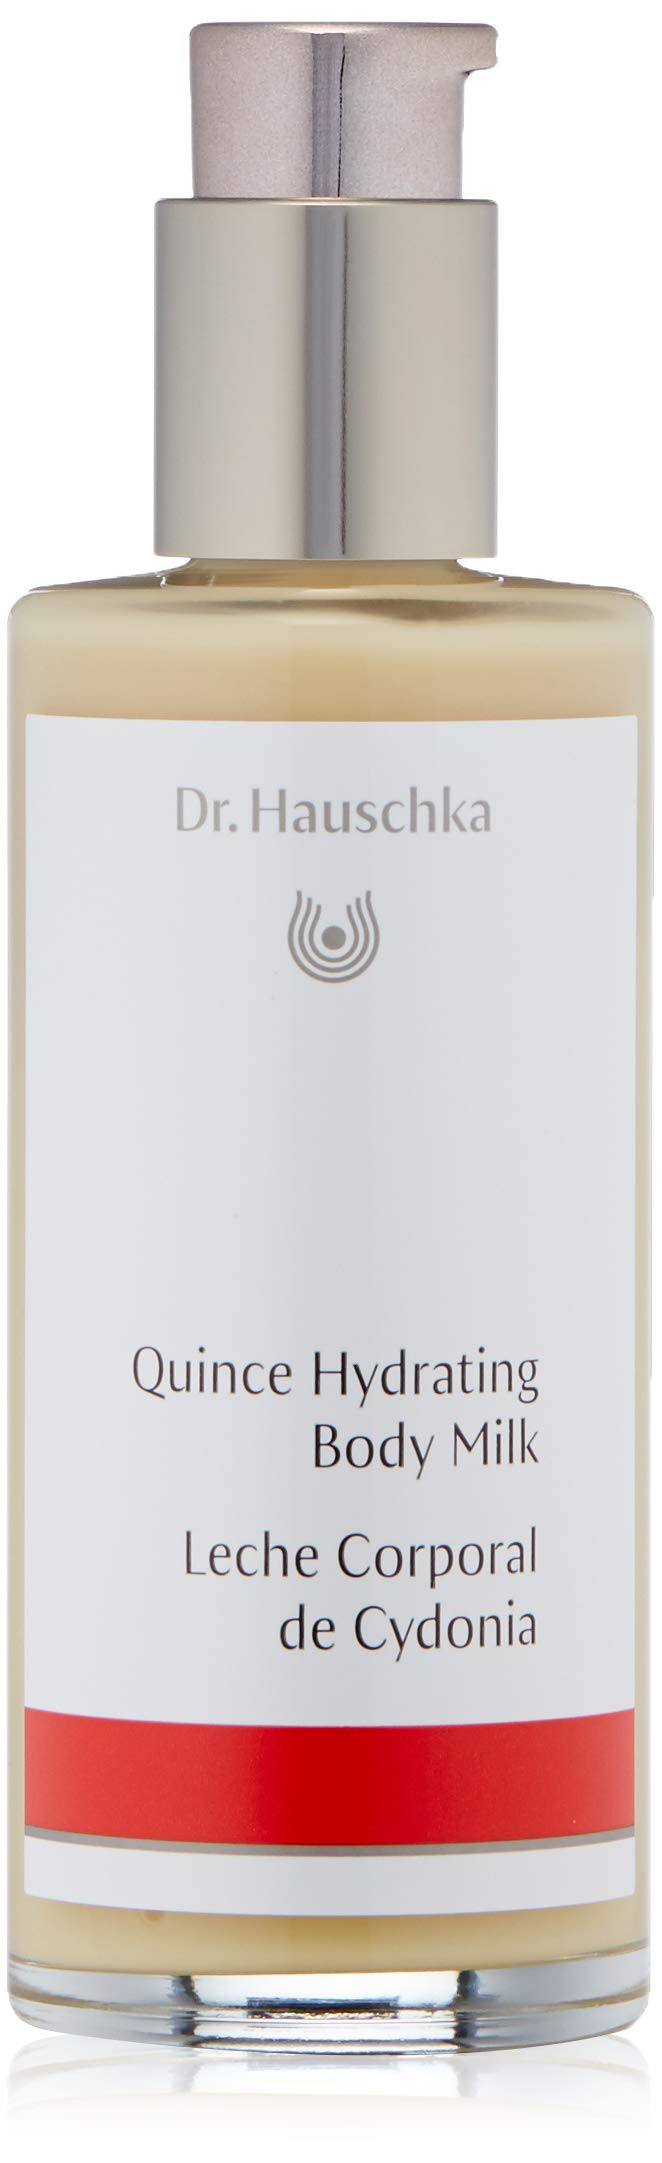 Dr. Hauschka Quince Hydrating Body Milk, Refreshes and Enlivens, 4.9 fl oz